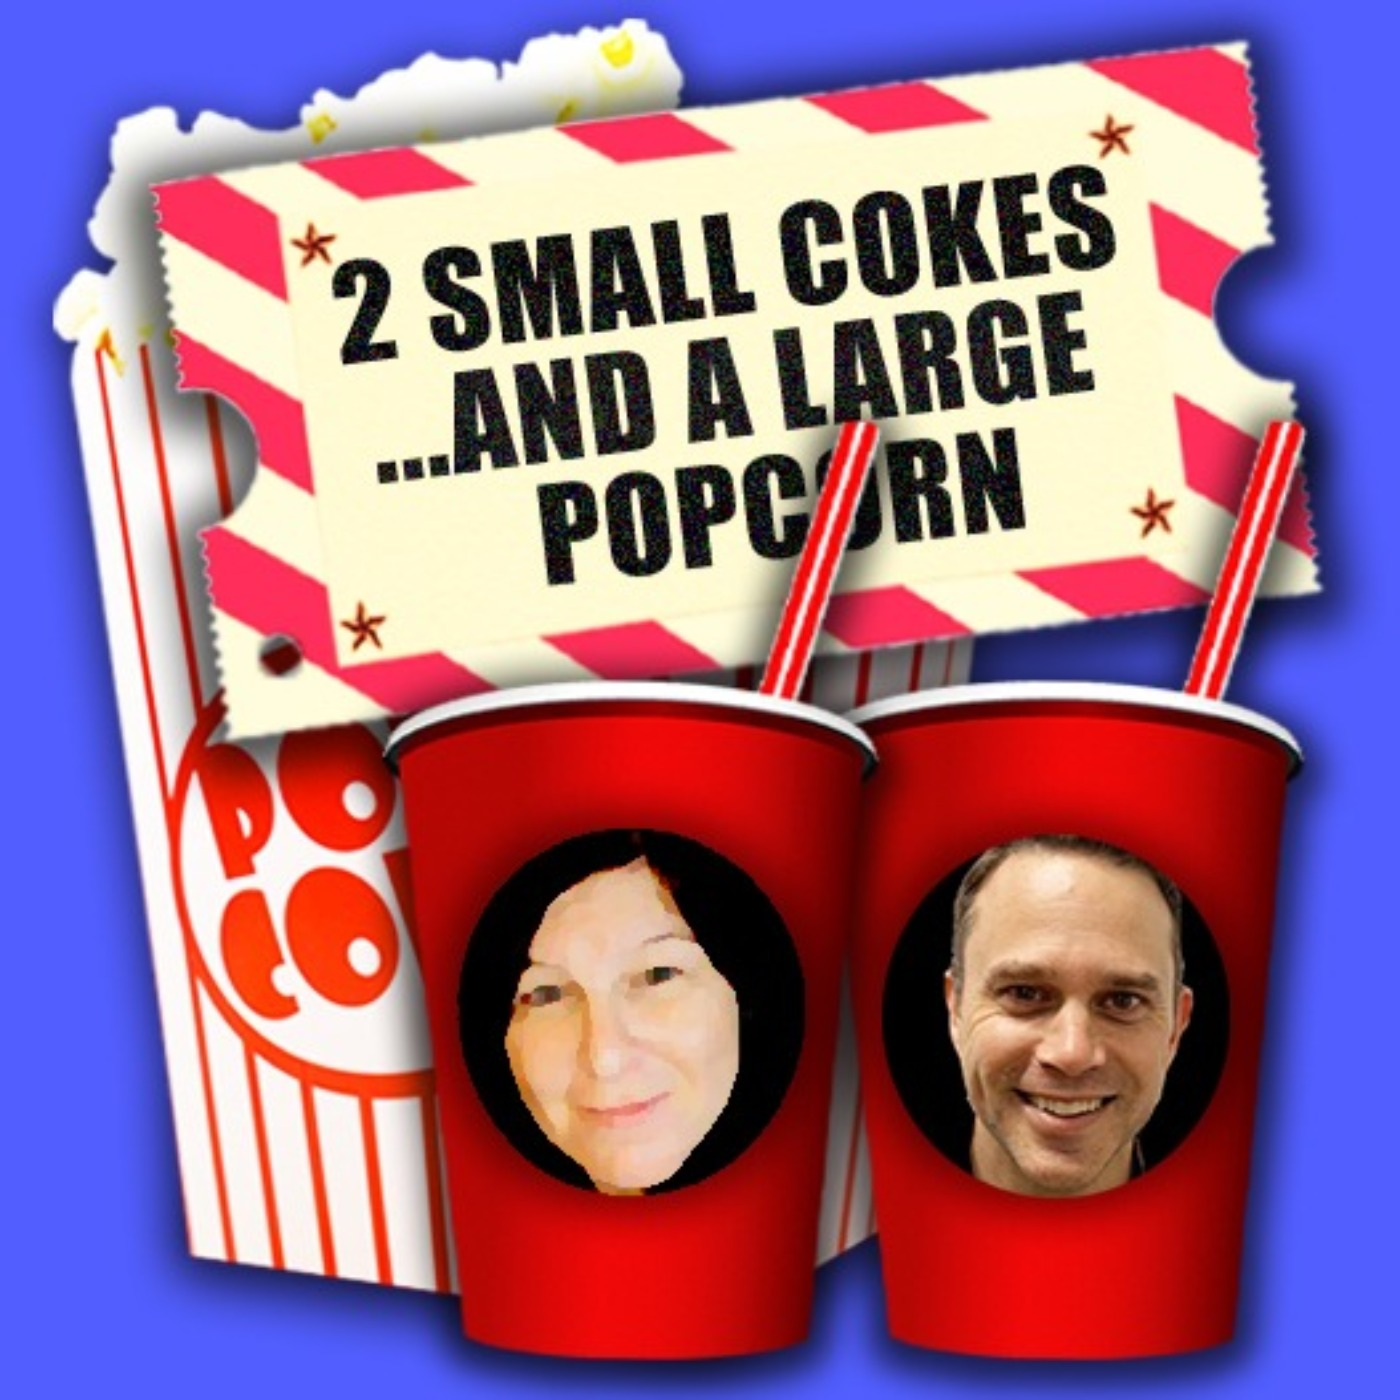 2 Small Cokes and a Large Popcorn!